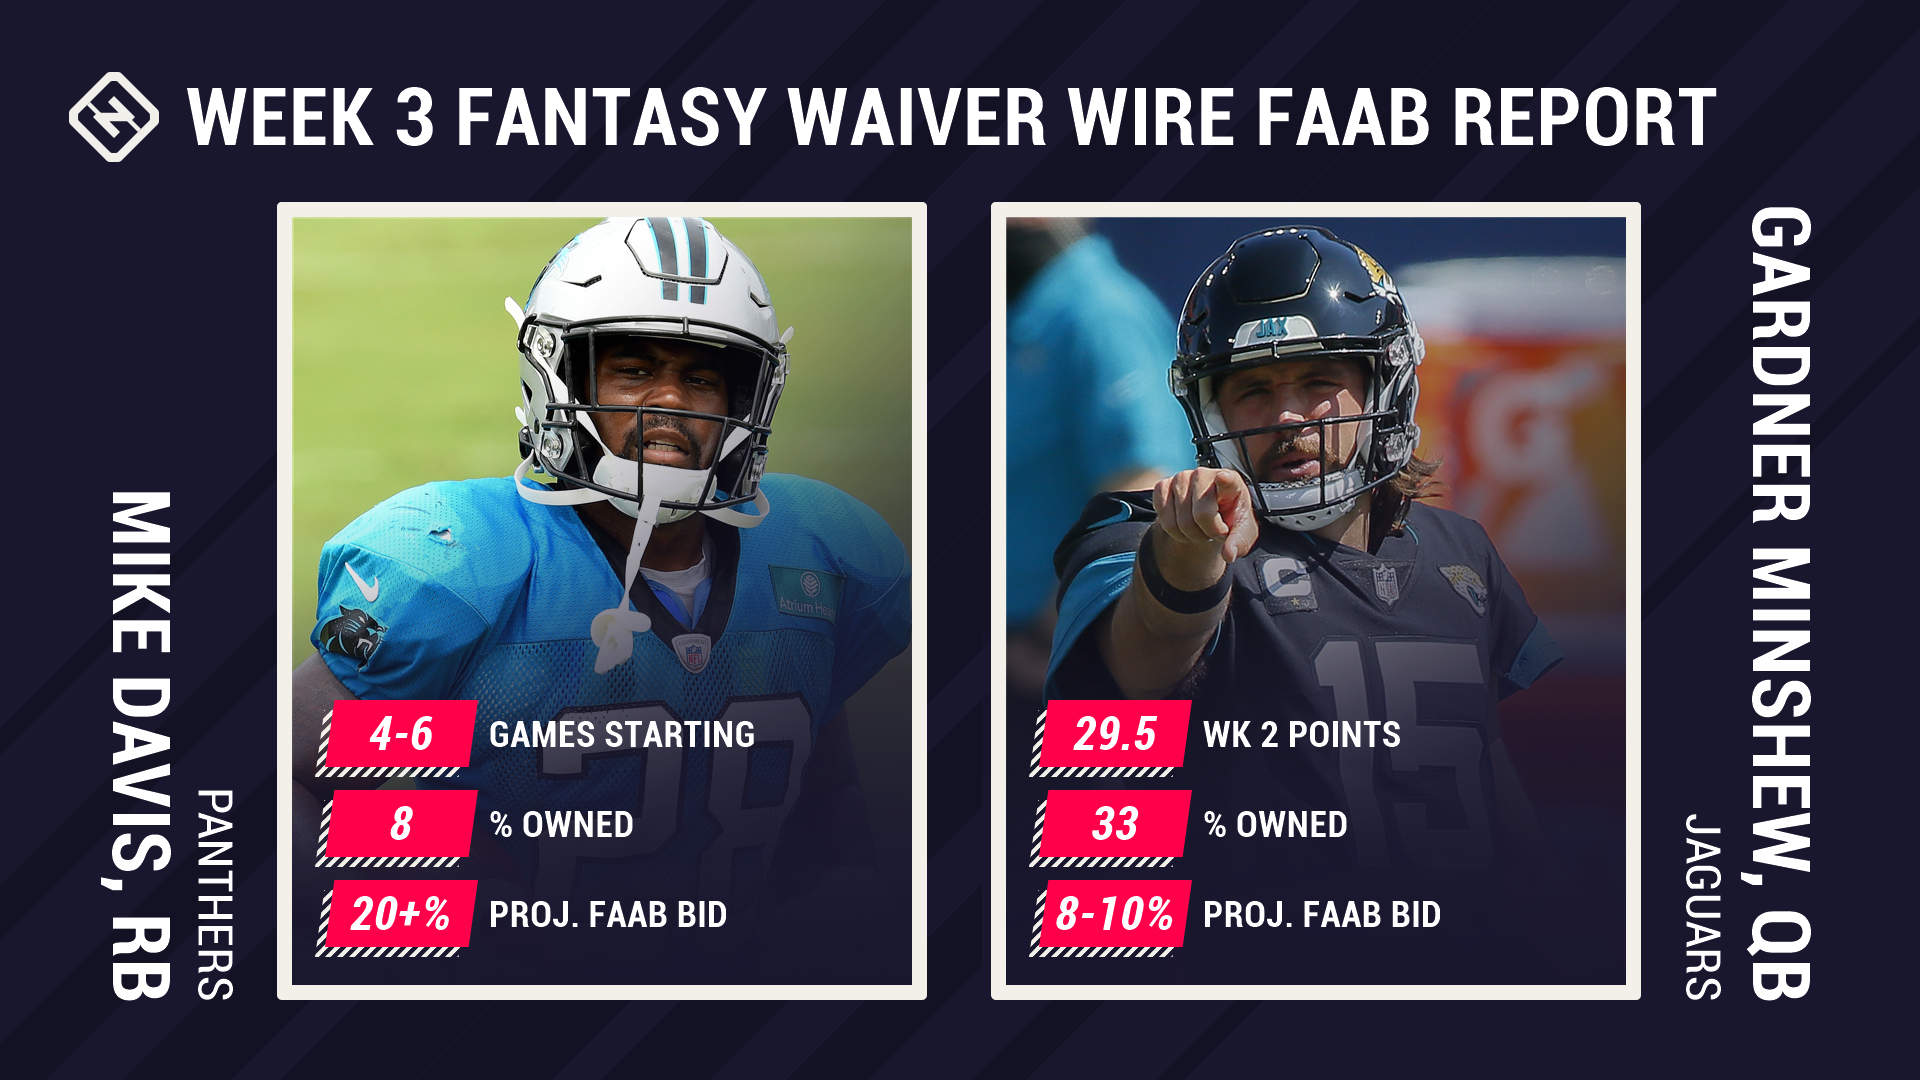 Fantasy Waiver Wire: FAAB Report for Week 3 pickups, free agents...